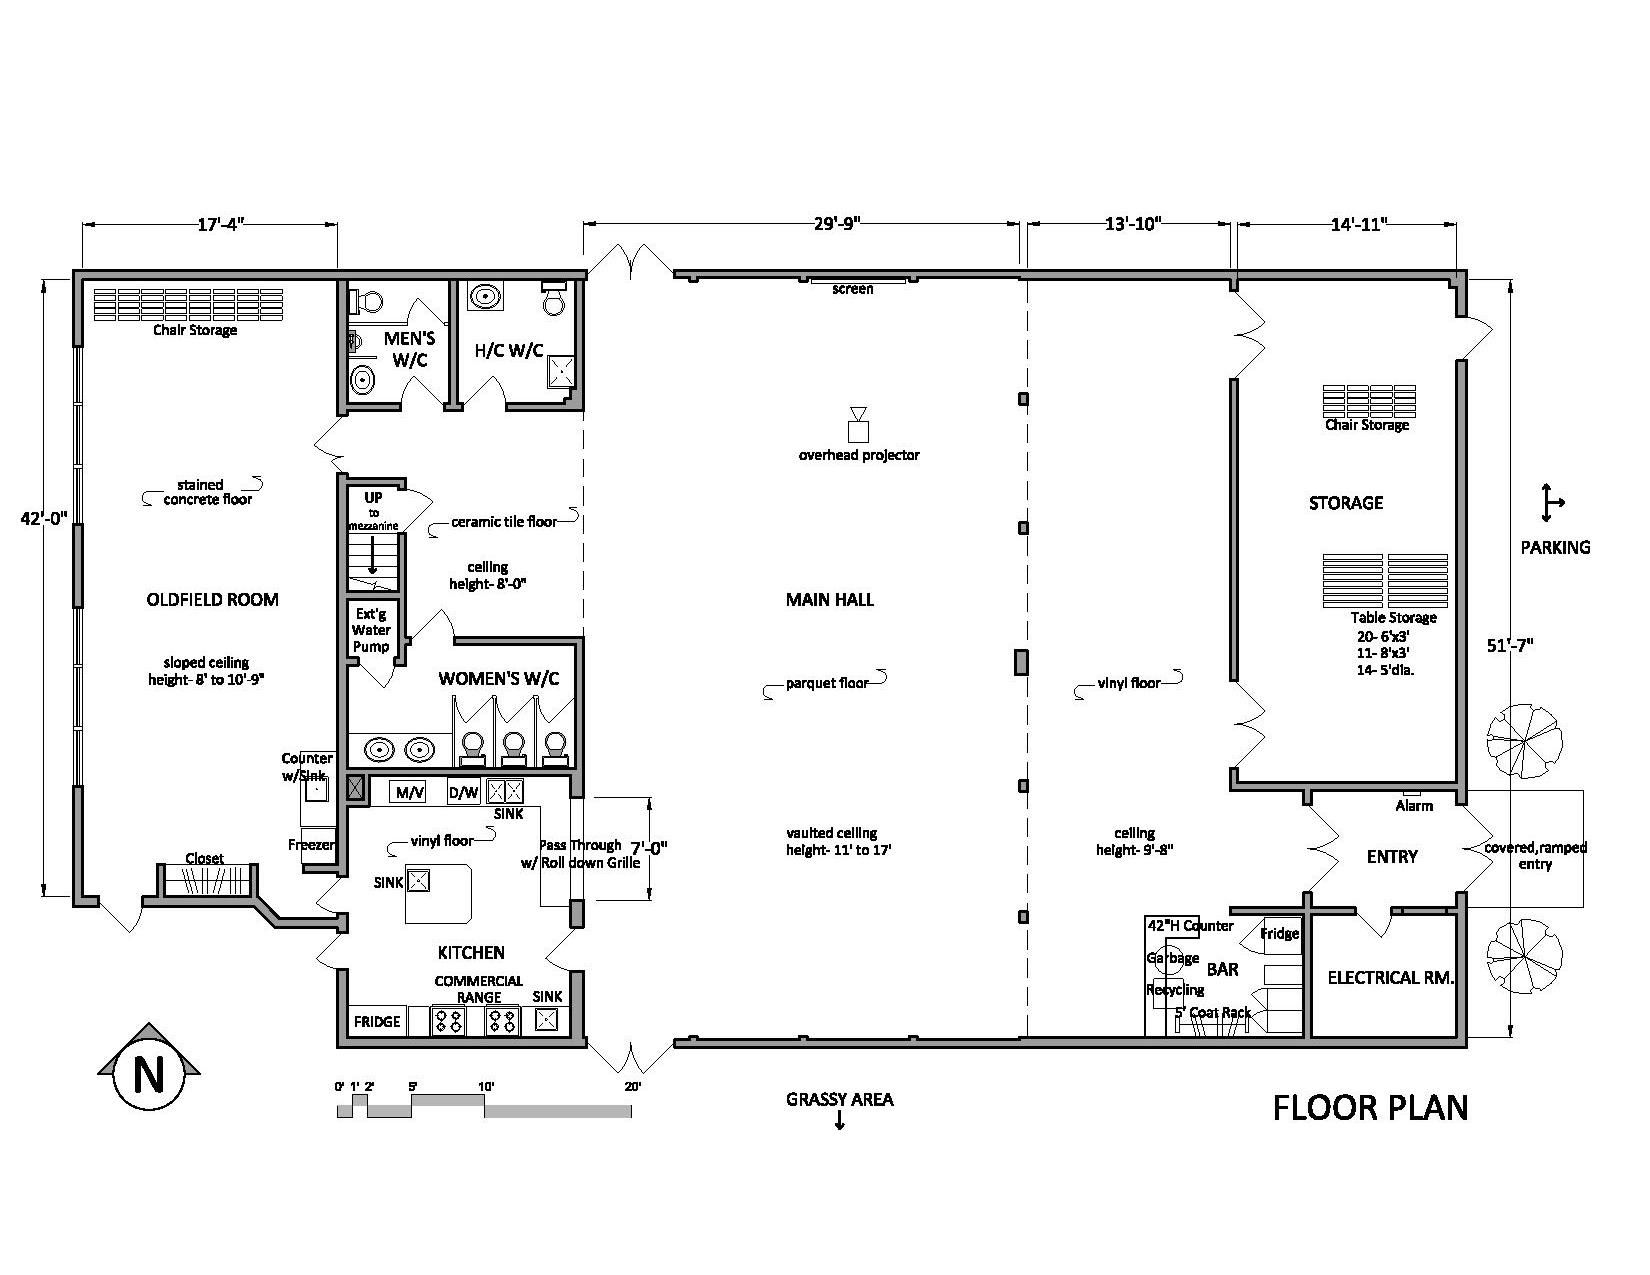 Prospect lake hall floor plan page 1650 1275 for Wedding floor plan